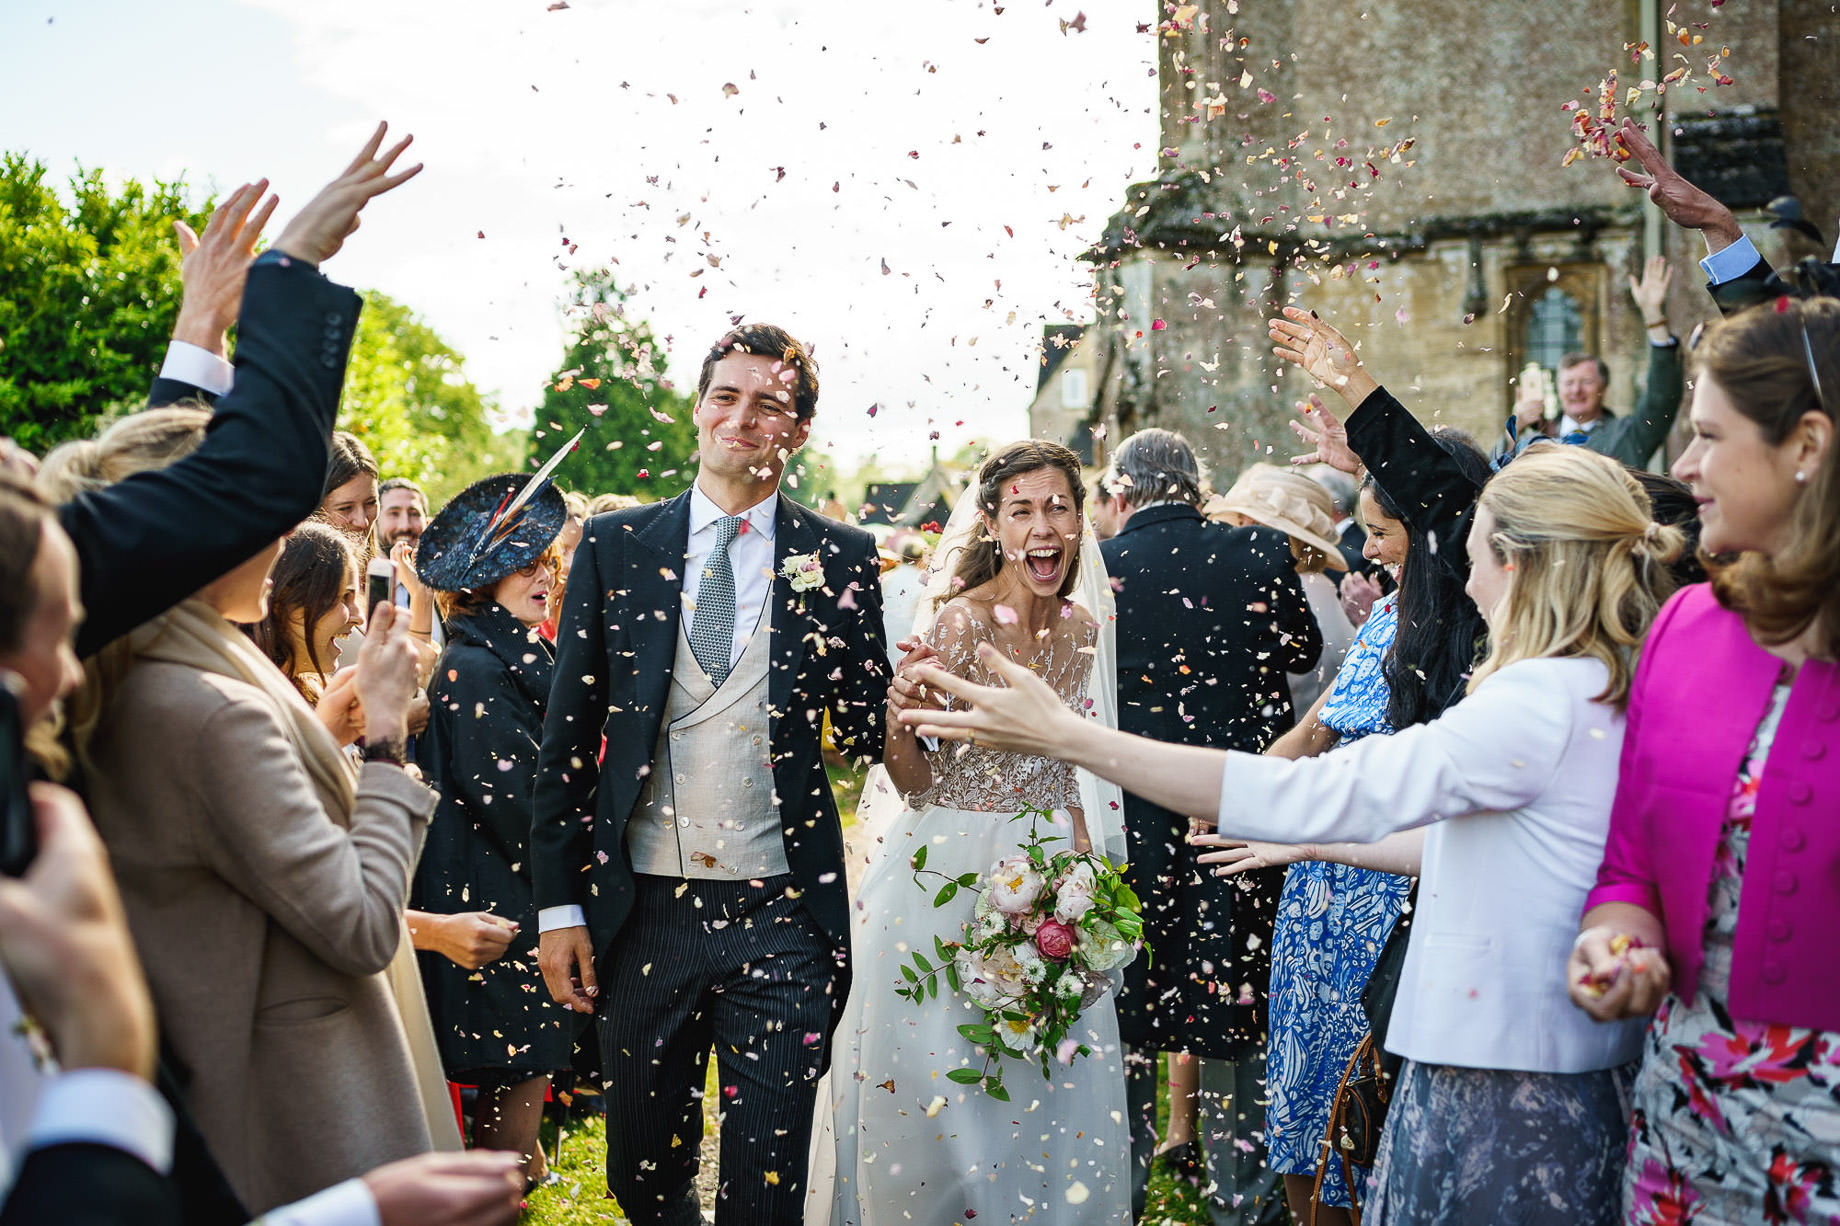 Best Wedding Photography Surrey and Hampshire 2019 - Guy Collier Photography